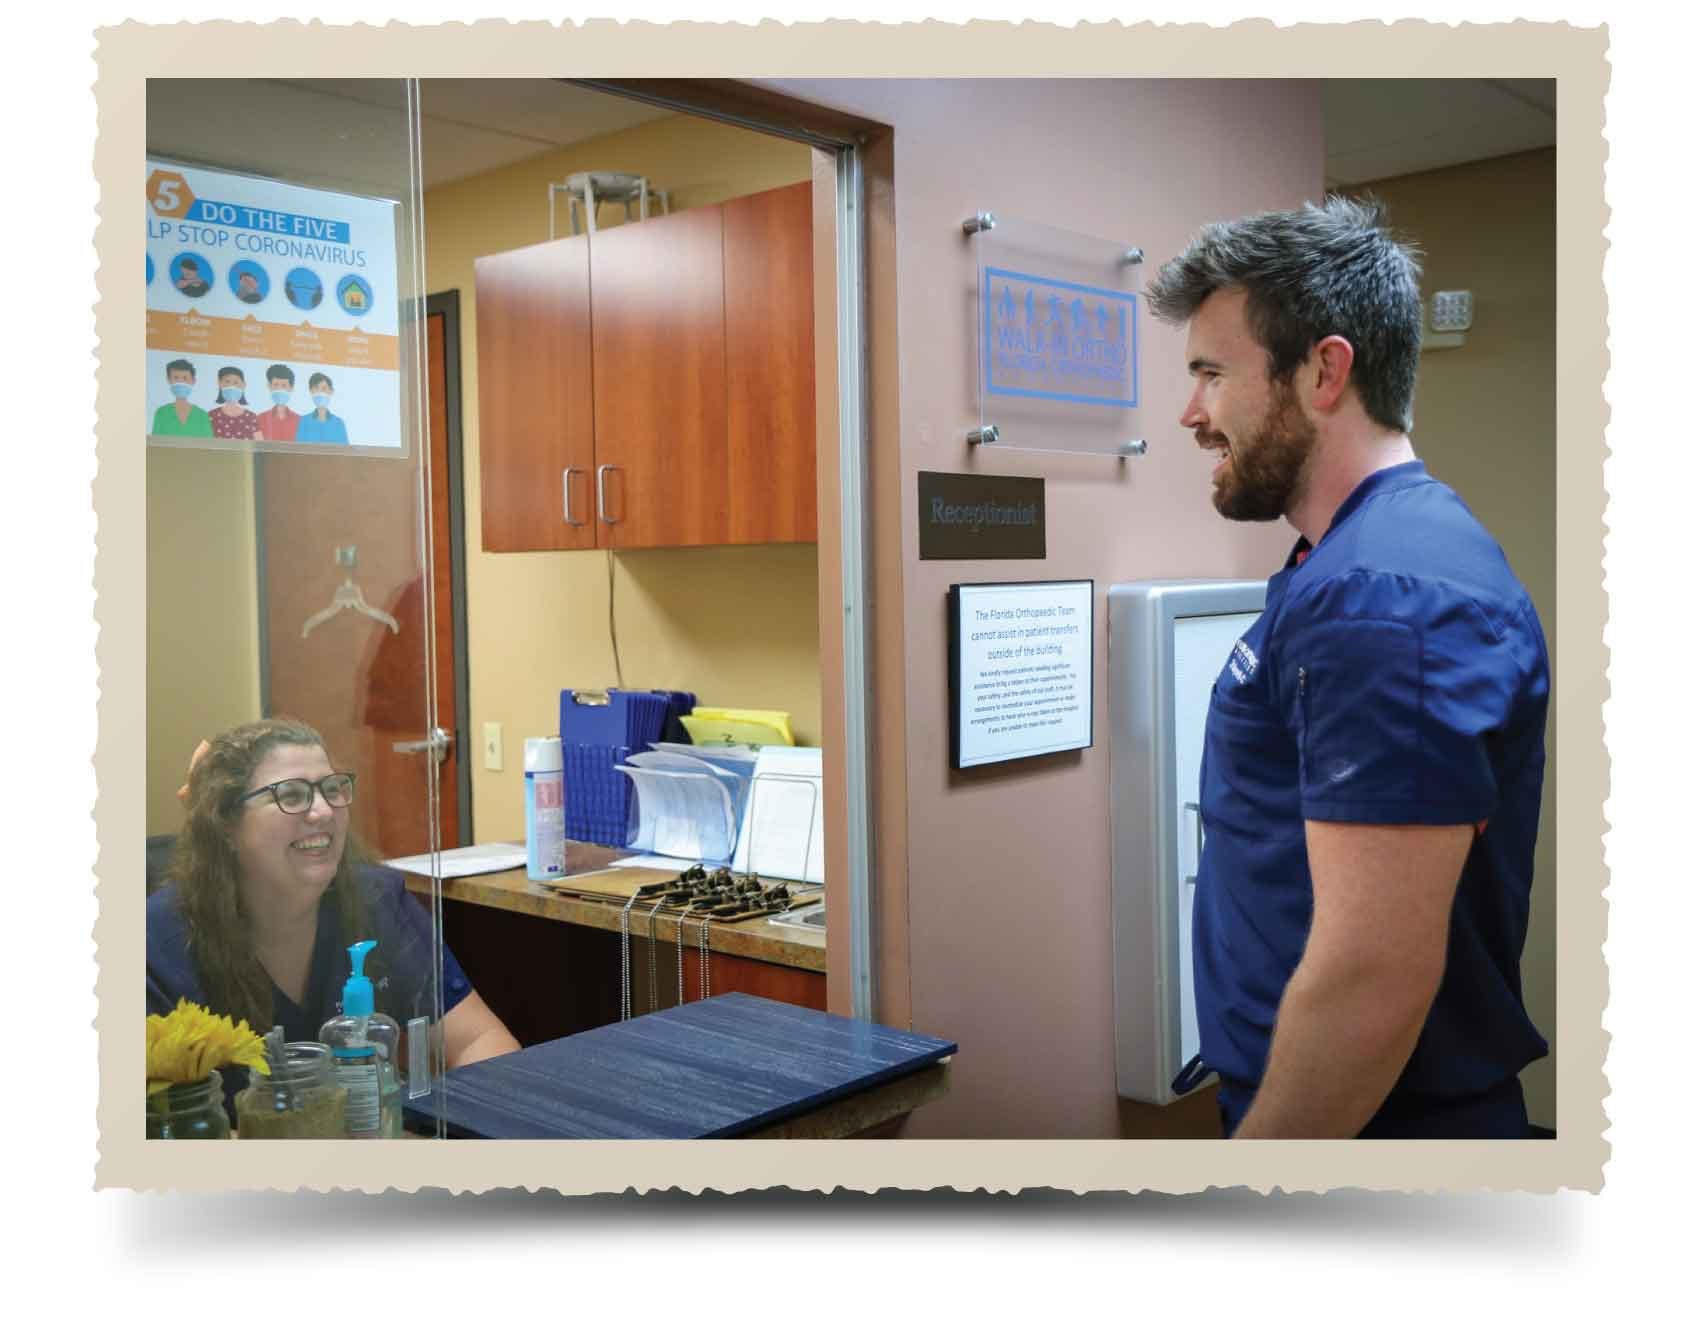 The FOA walk-in clinic opens in Orange City. The clinic is dedicated to treating sports injuries, breaks, accidents, sprains and fractures.